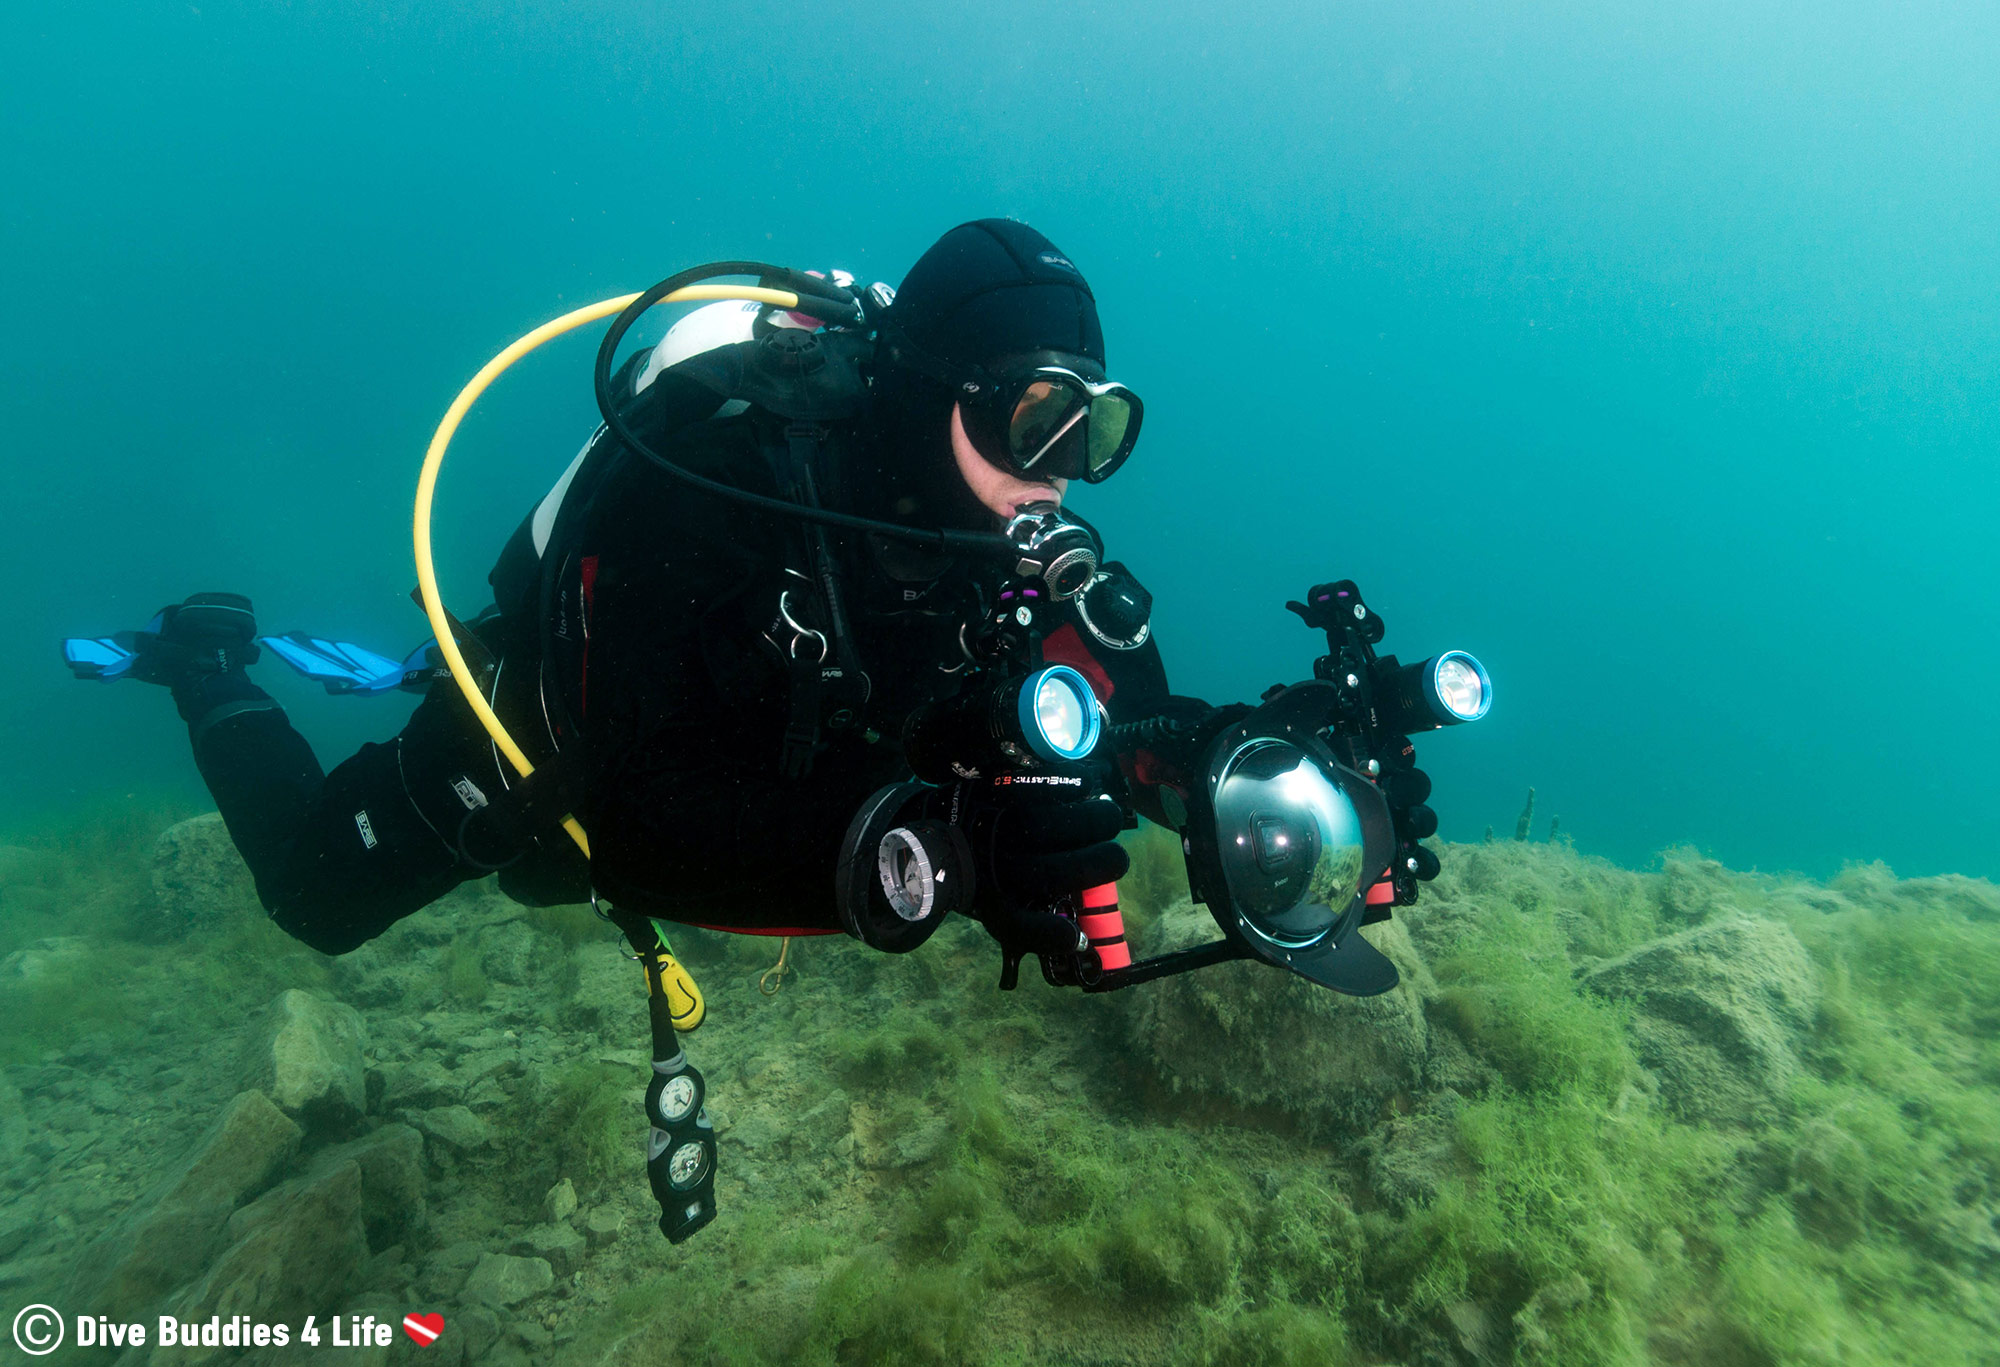 Joey Learning To Scuba Dive And Shoot Videography In A Quarry